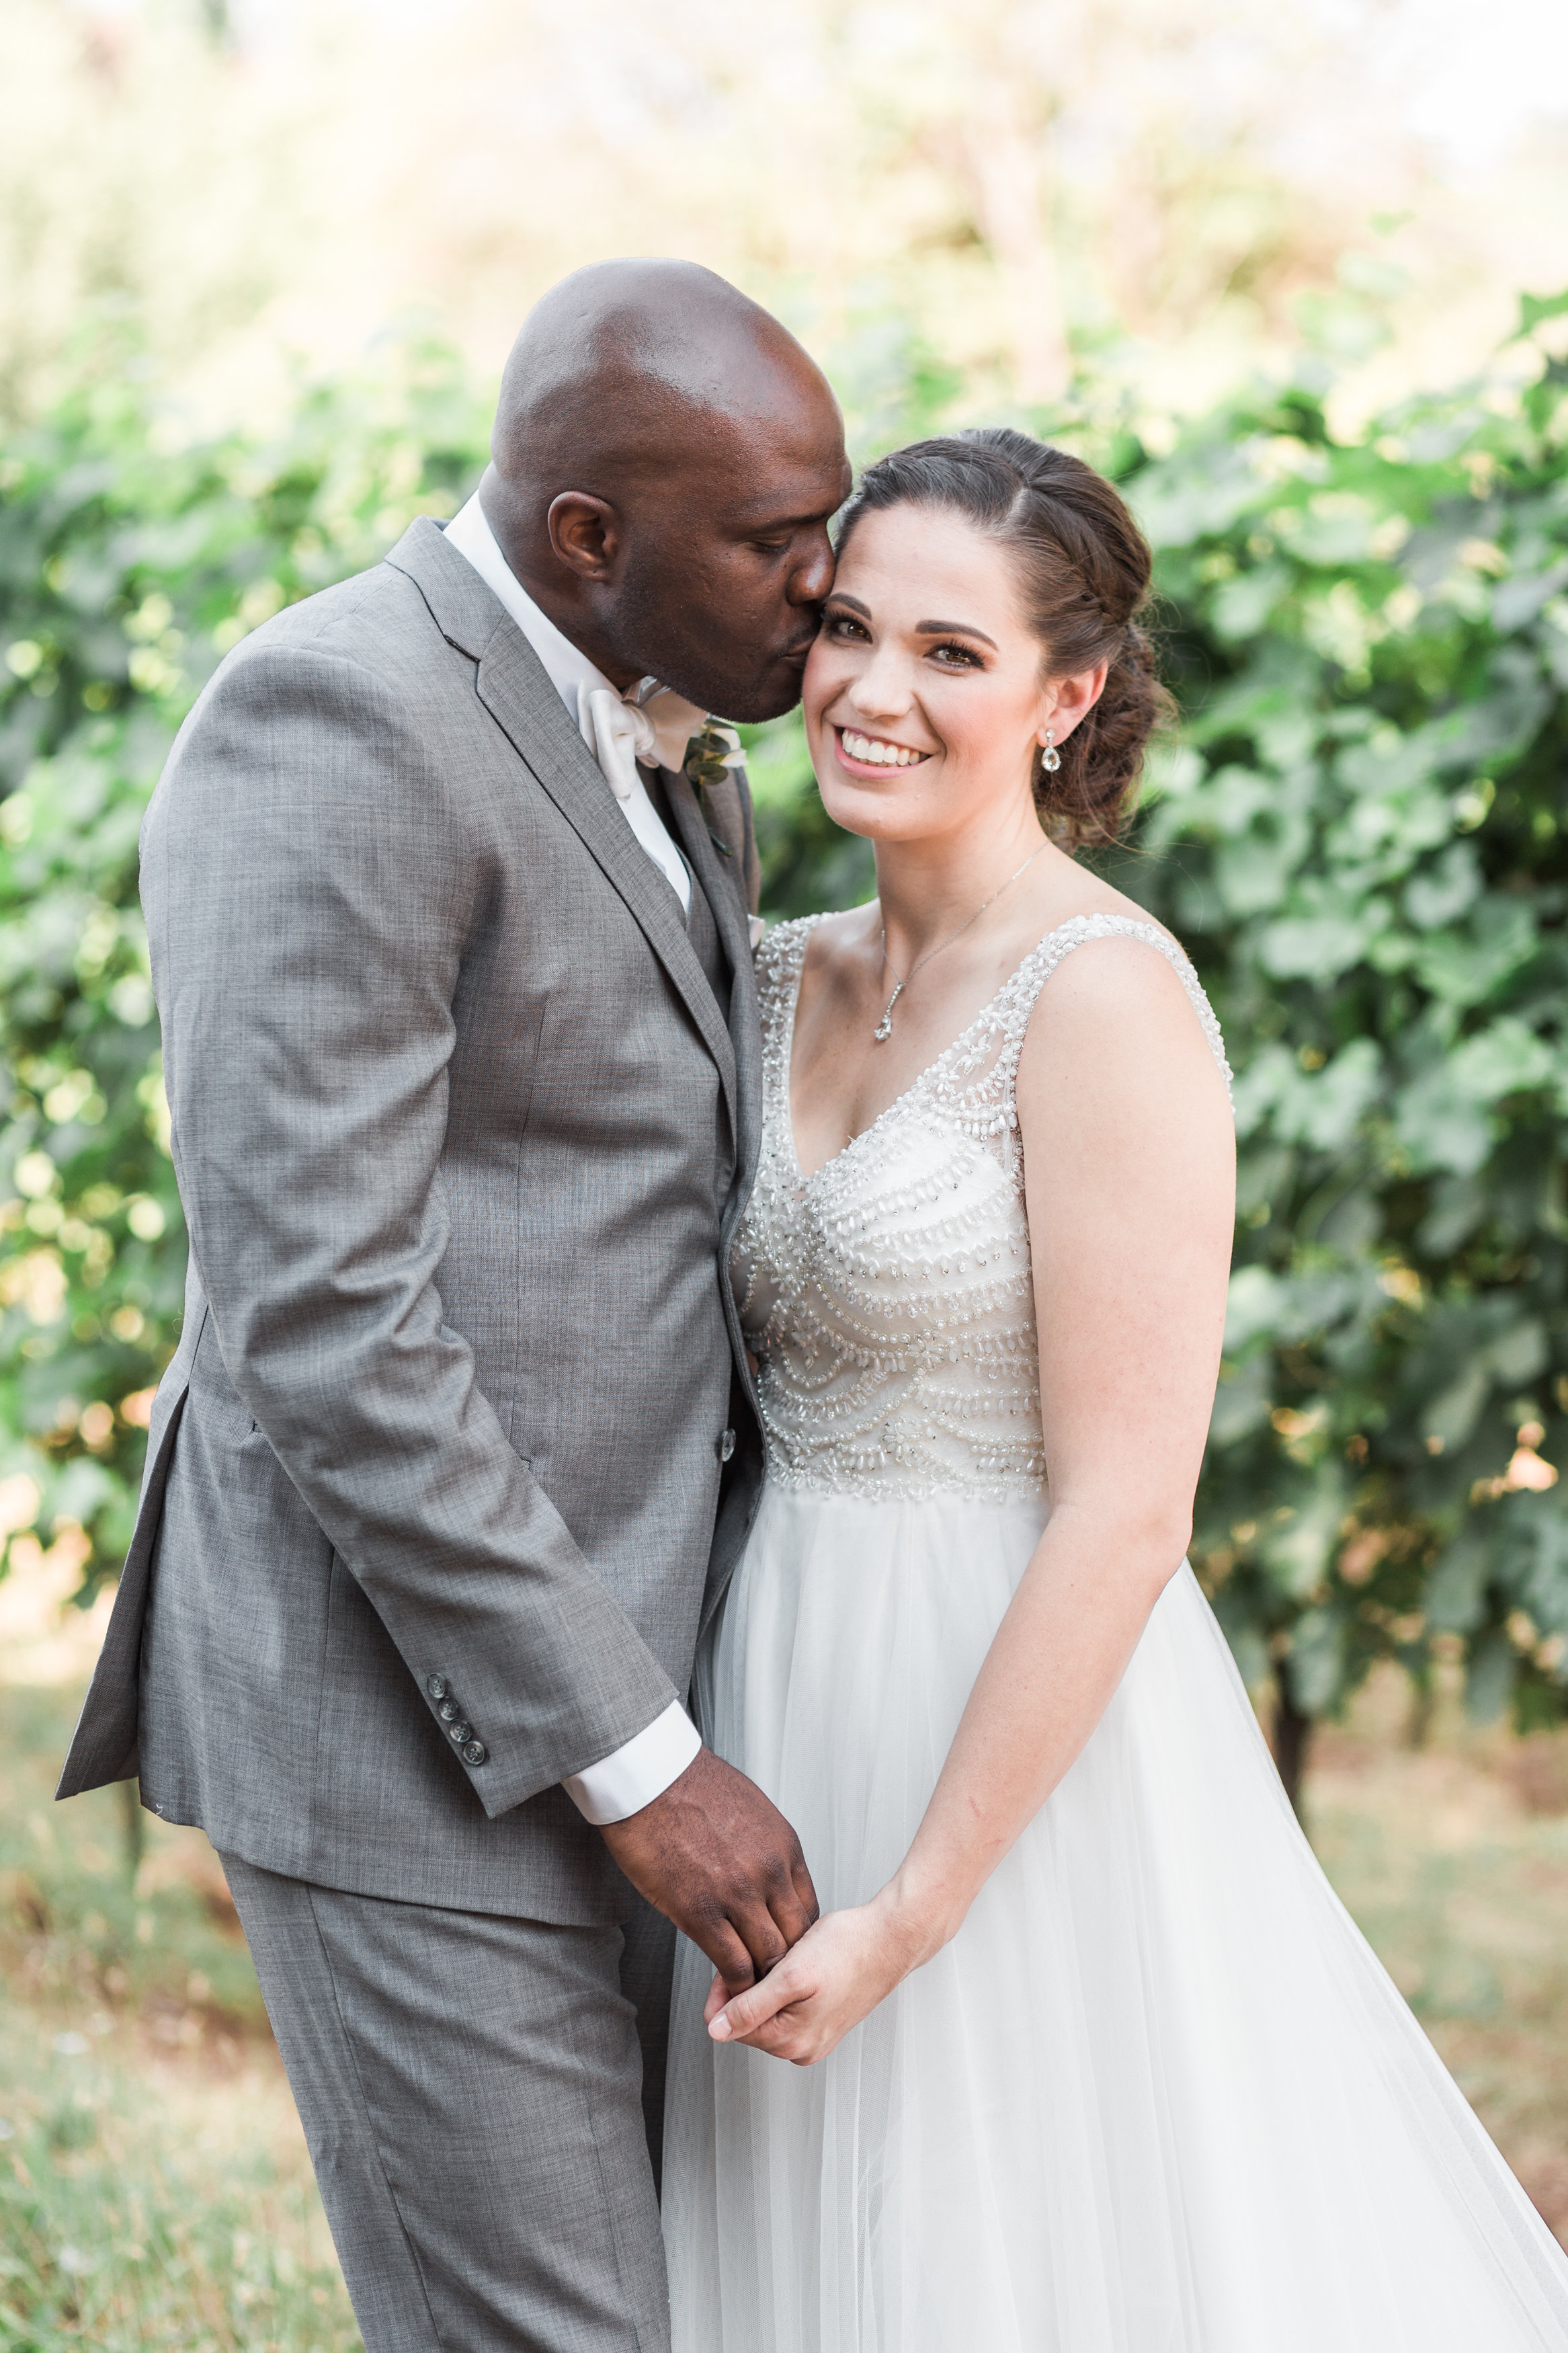 A Red Ridge Farms Dayton Oregon Wedding - The Overwhelmed Bride Wedding Blog